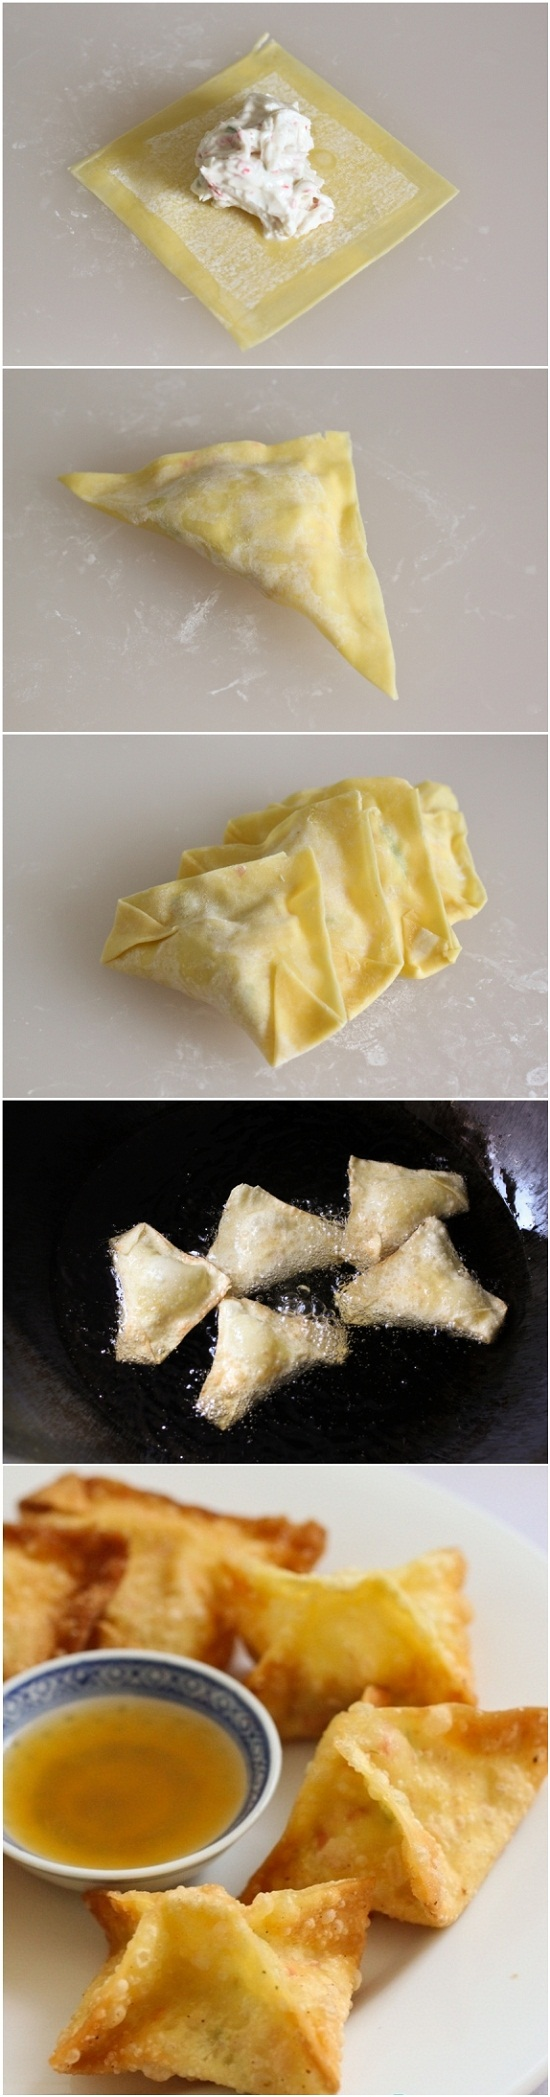 Cheese-Wonton-Recipe